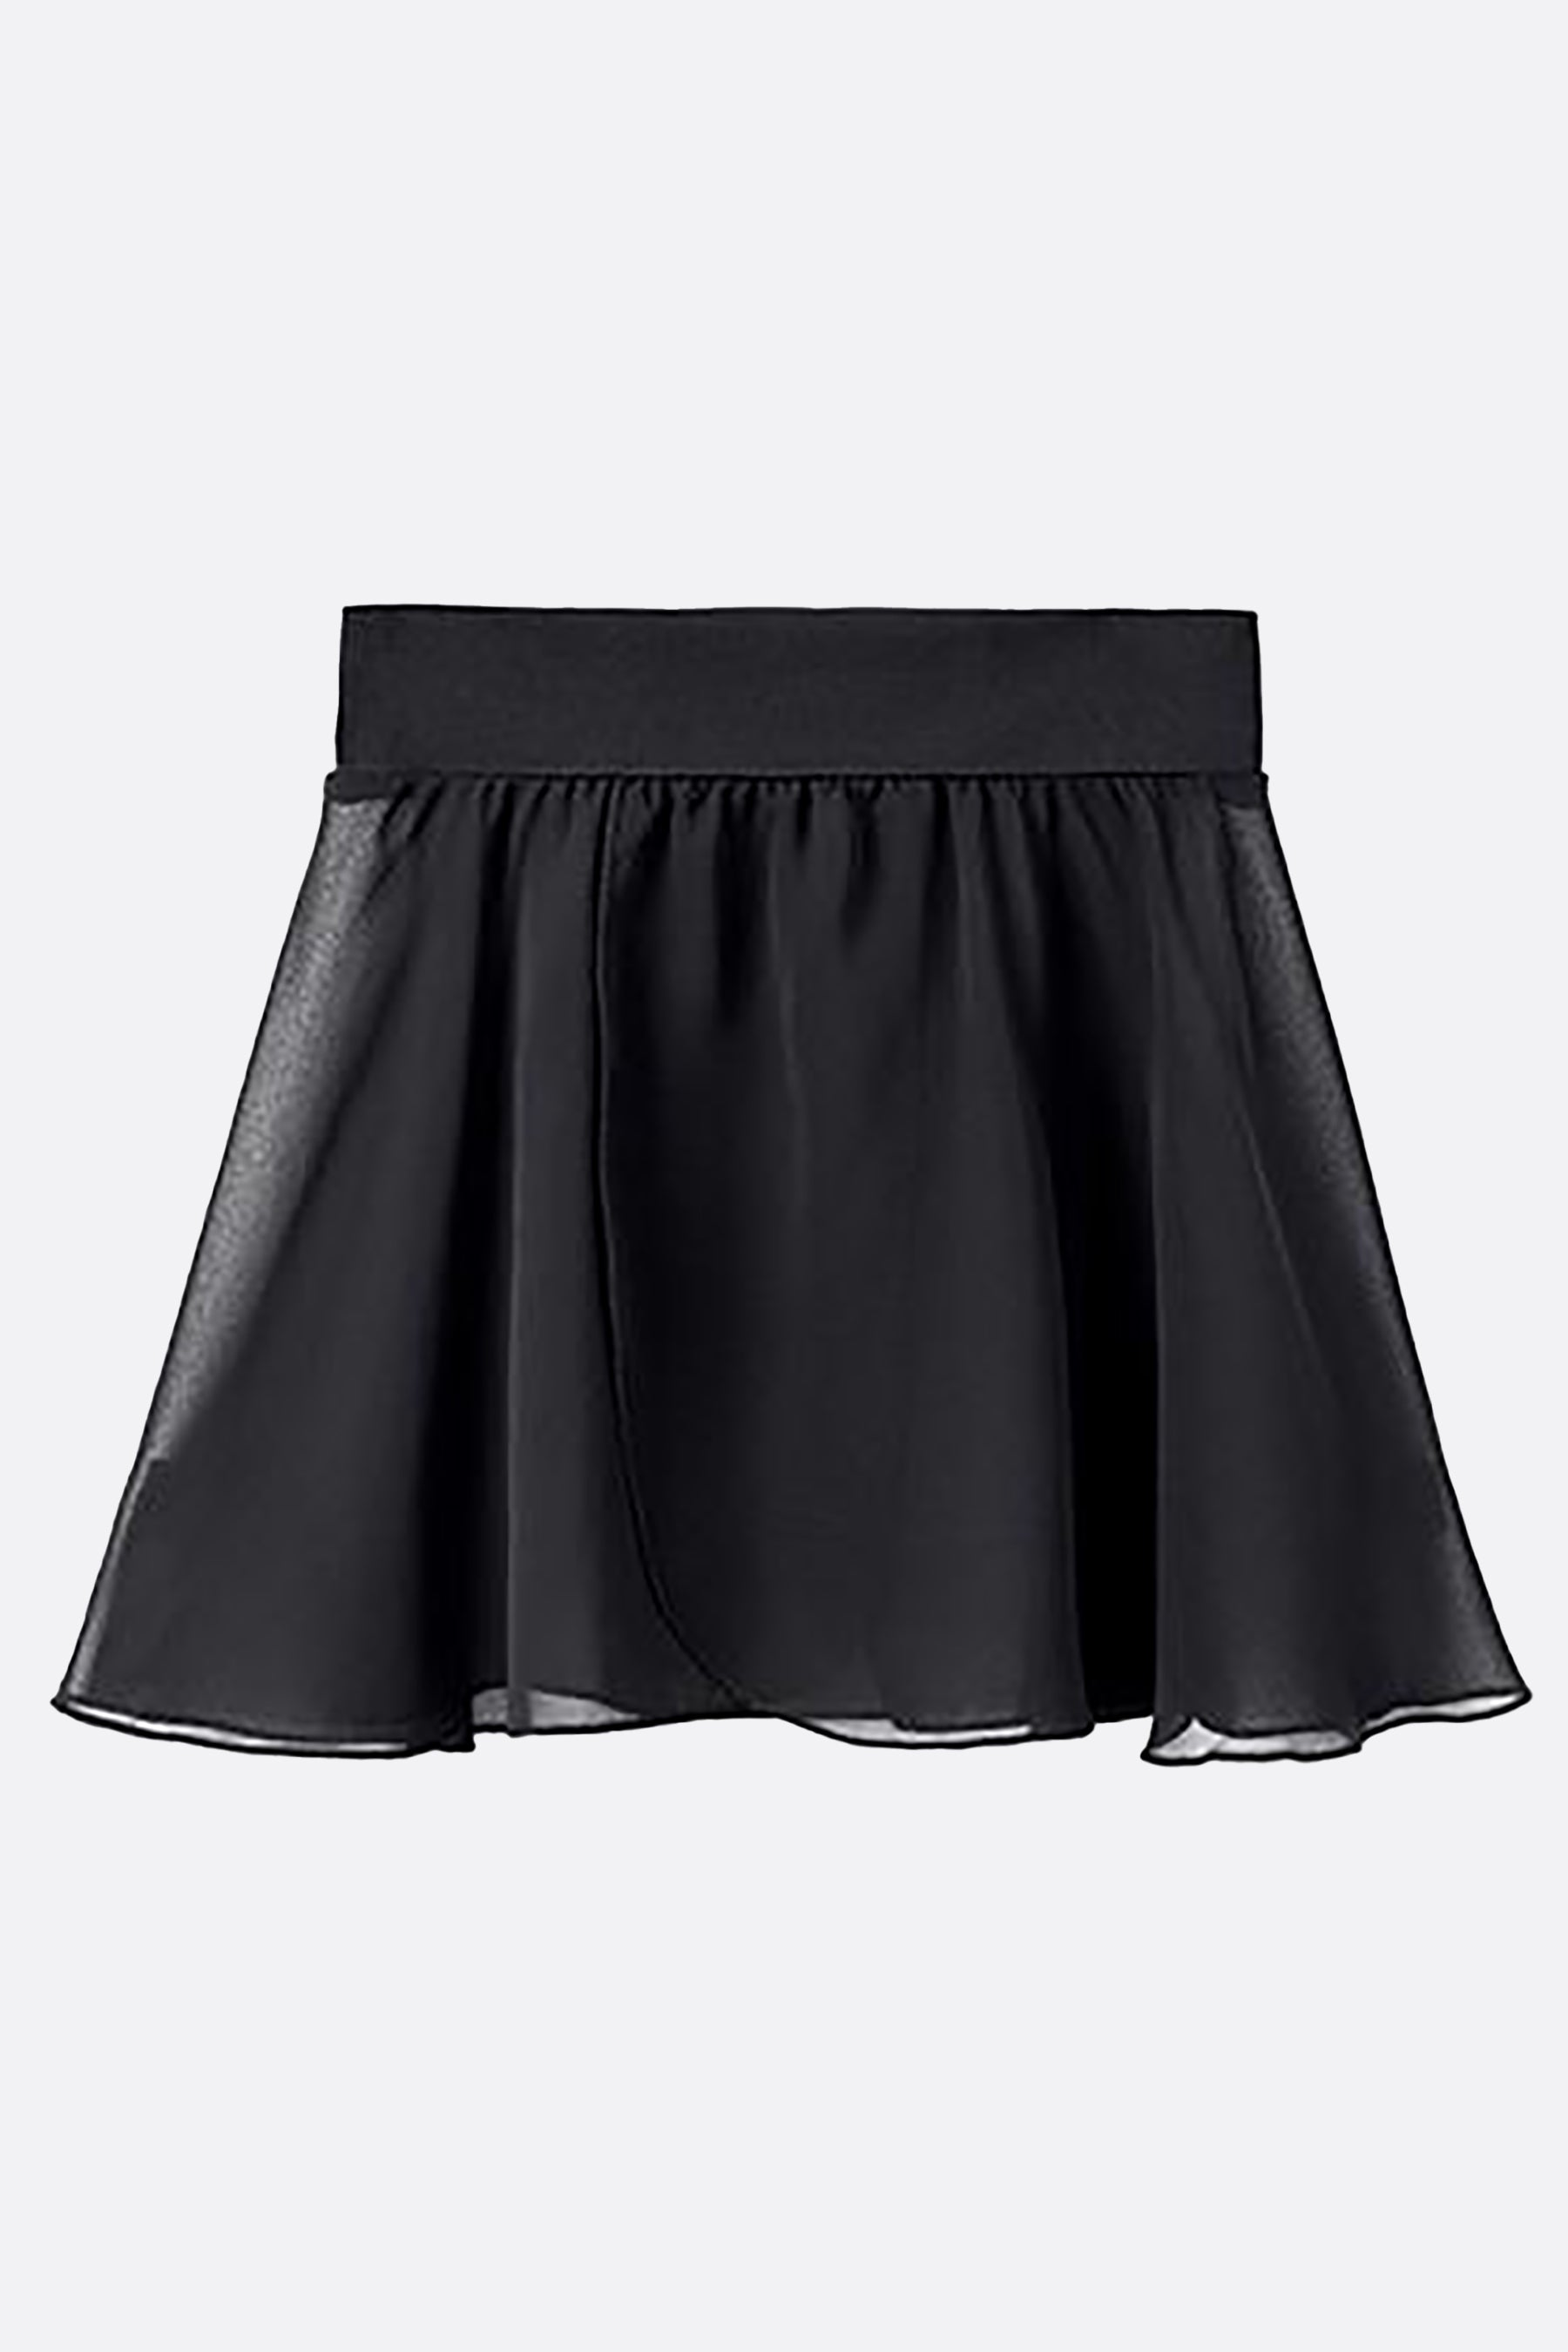 Women's Chiffon Pull-On Wrap Skirt